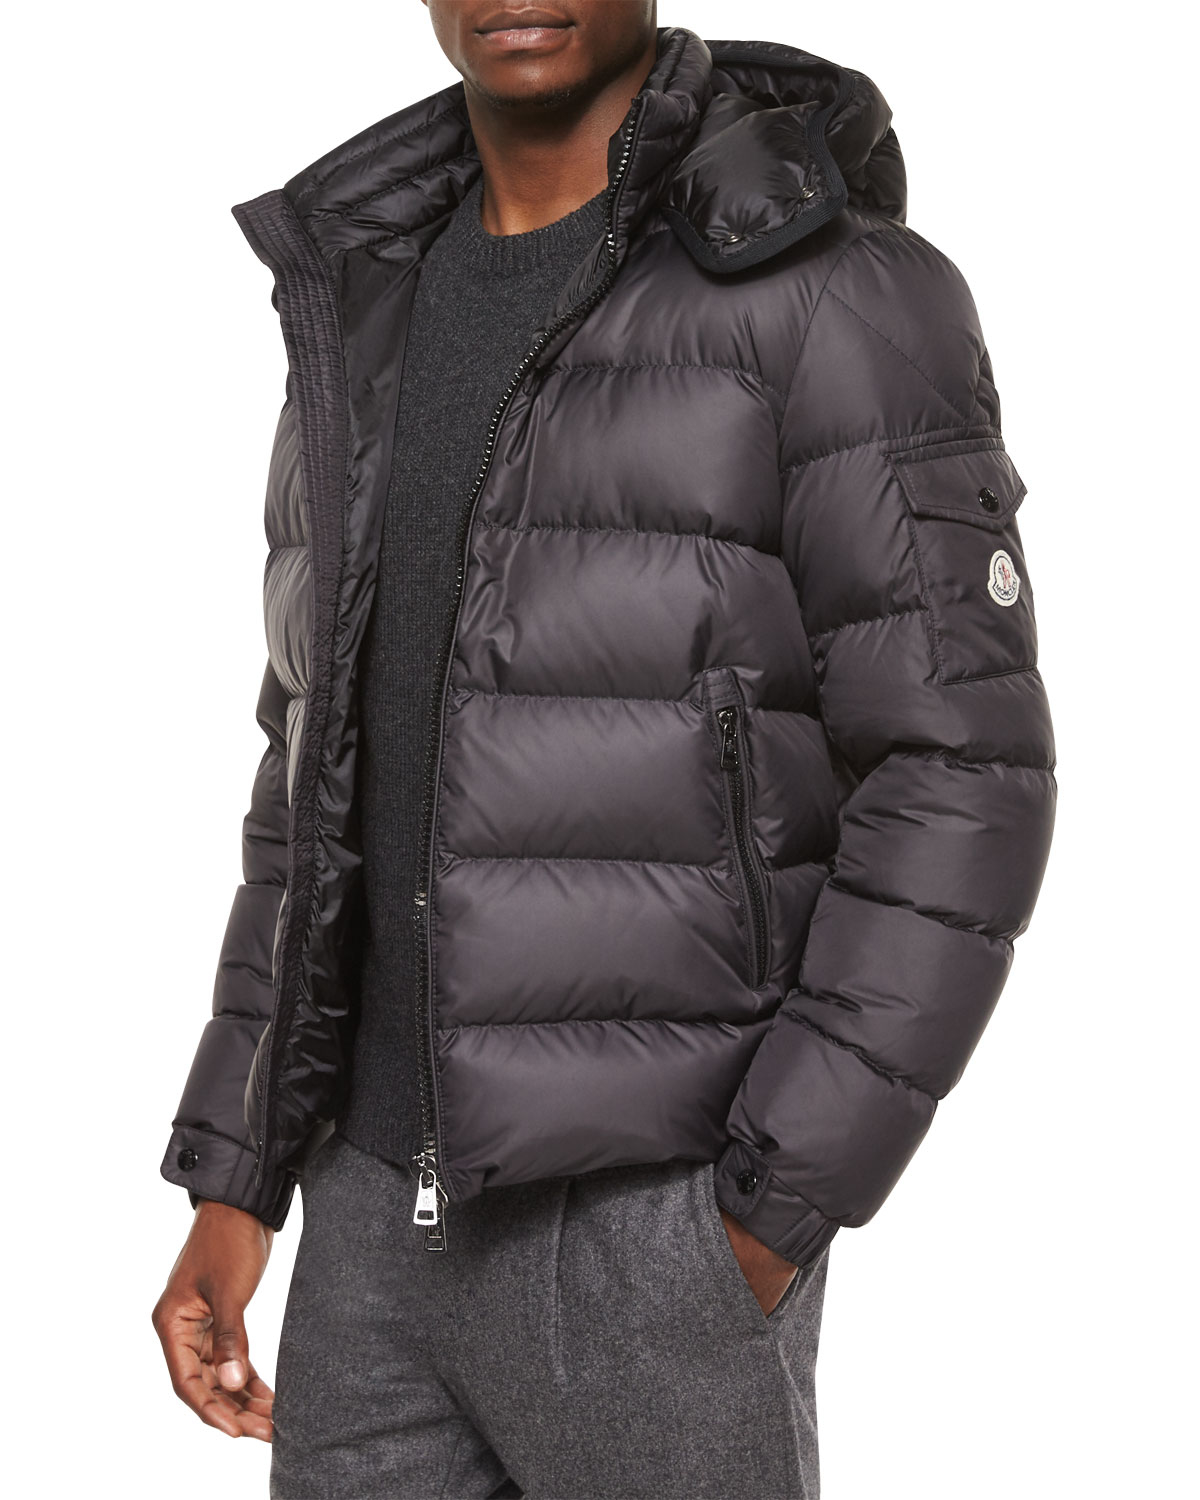 moncler himalaya hooded down jacket in black for men lyst. Black Bedroom Furniture Sets. Home Design Ideas